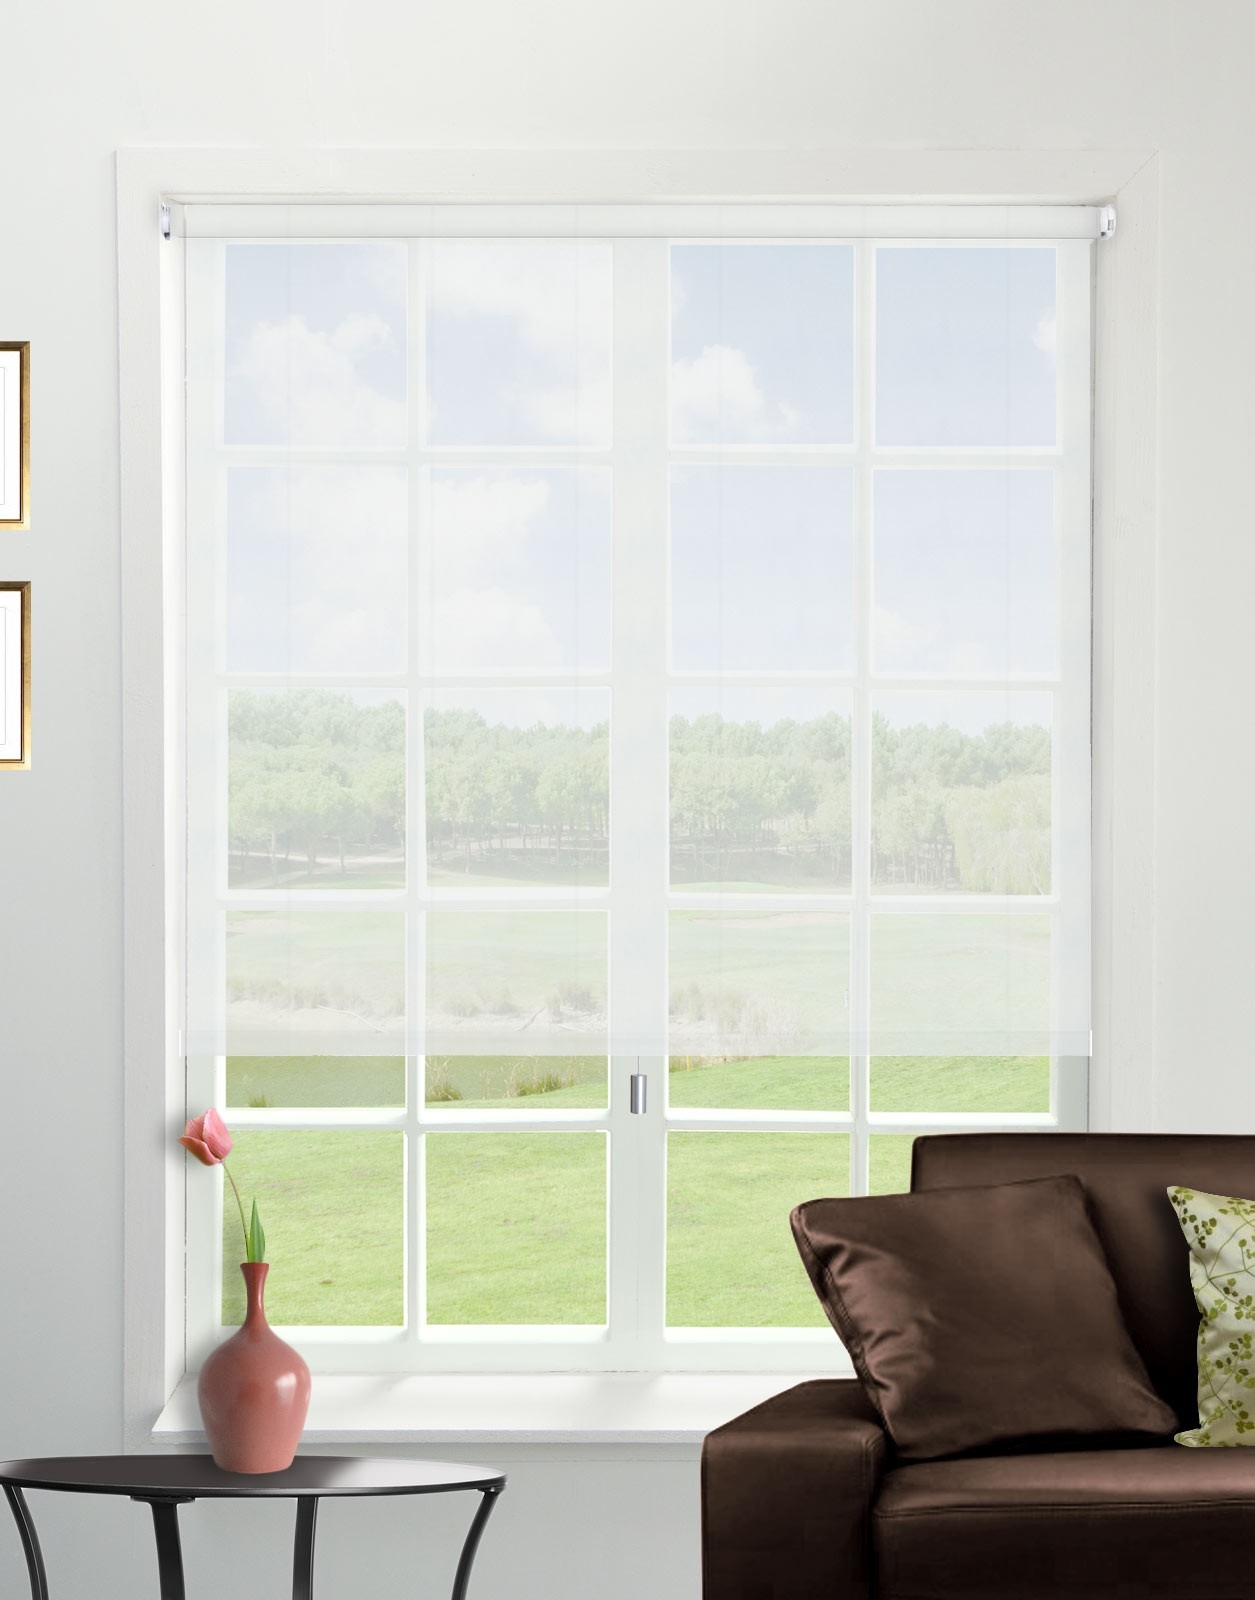 Voile White Roller Blind Direct Order Blinds Uk Intended For Sheer Roller Blinds (Image 14 of 15)